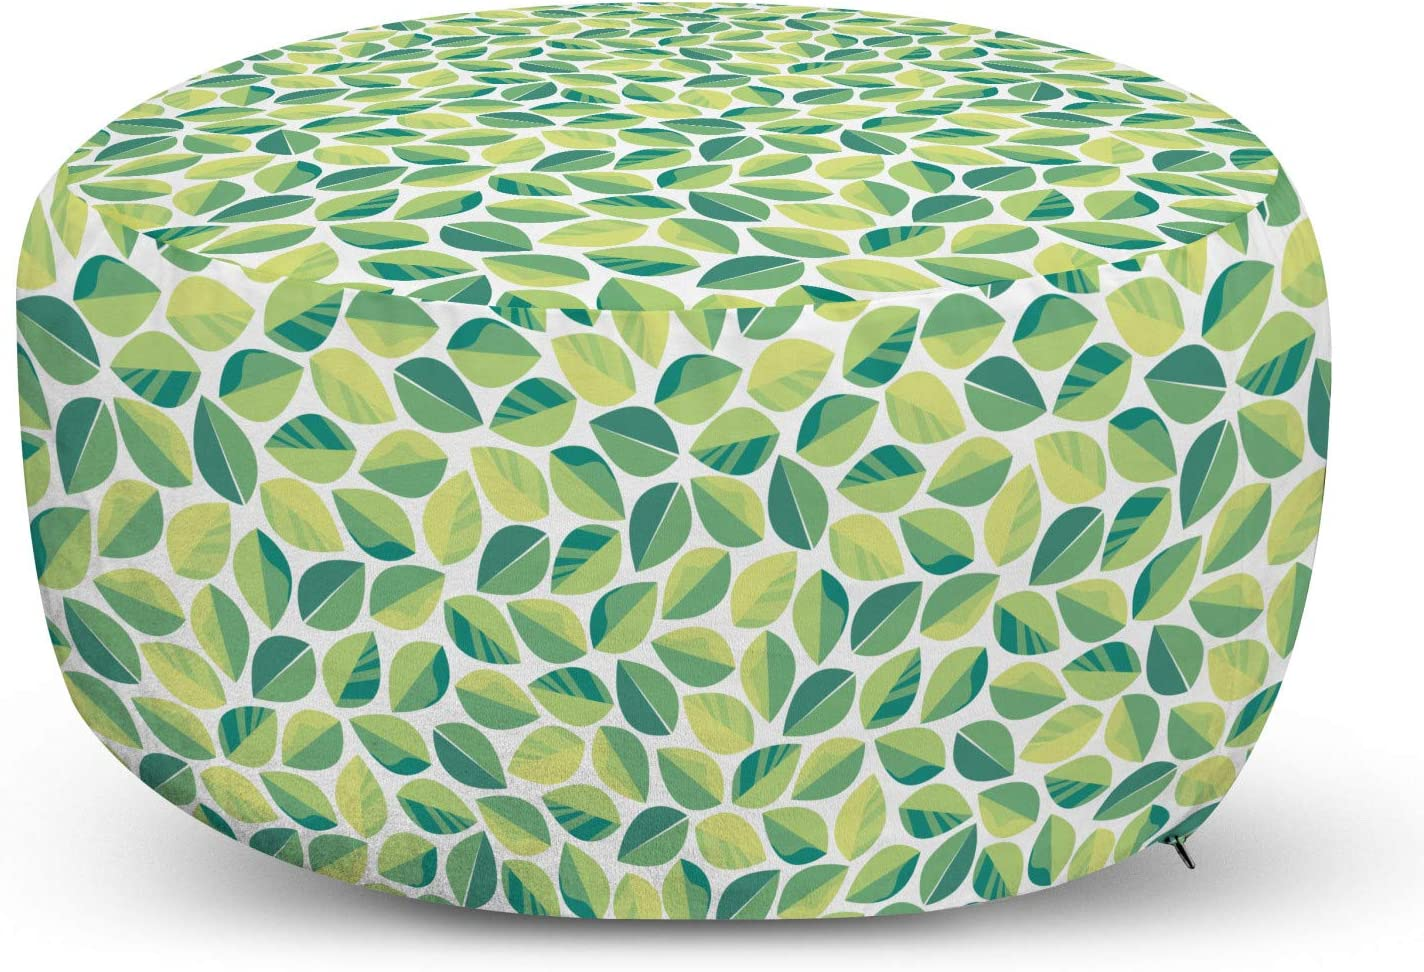 Max 83% OFF Lunarable Leafage Ottoman Pouf Detroit Mall Botanical Oval Continuous Natura